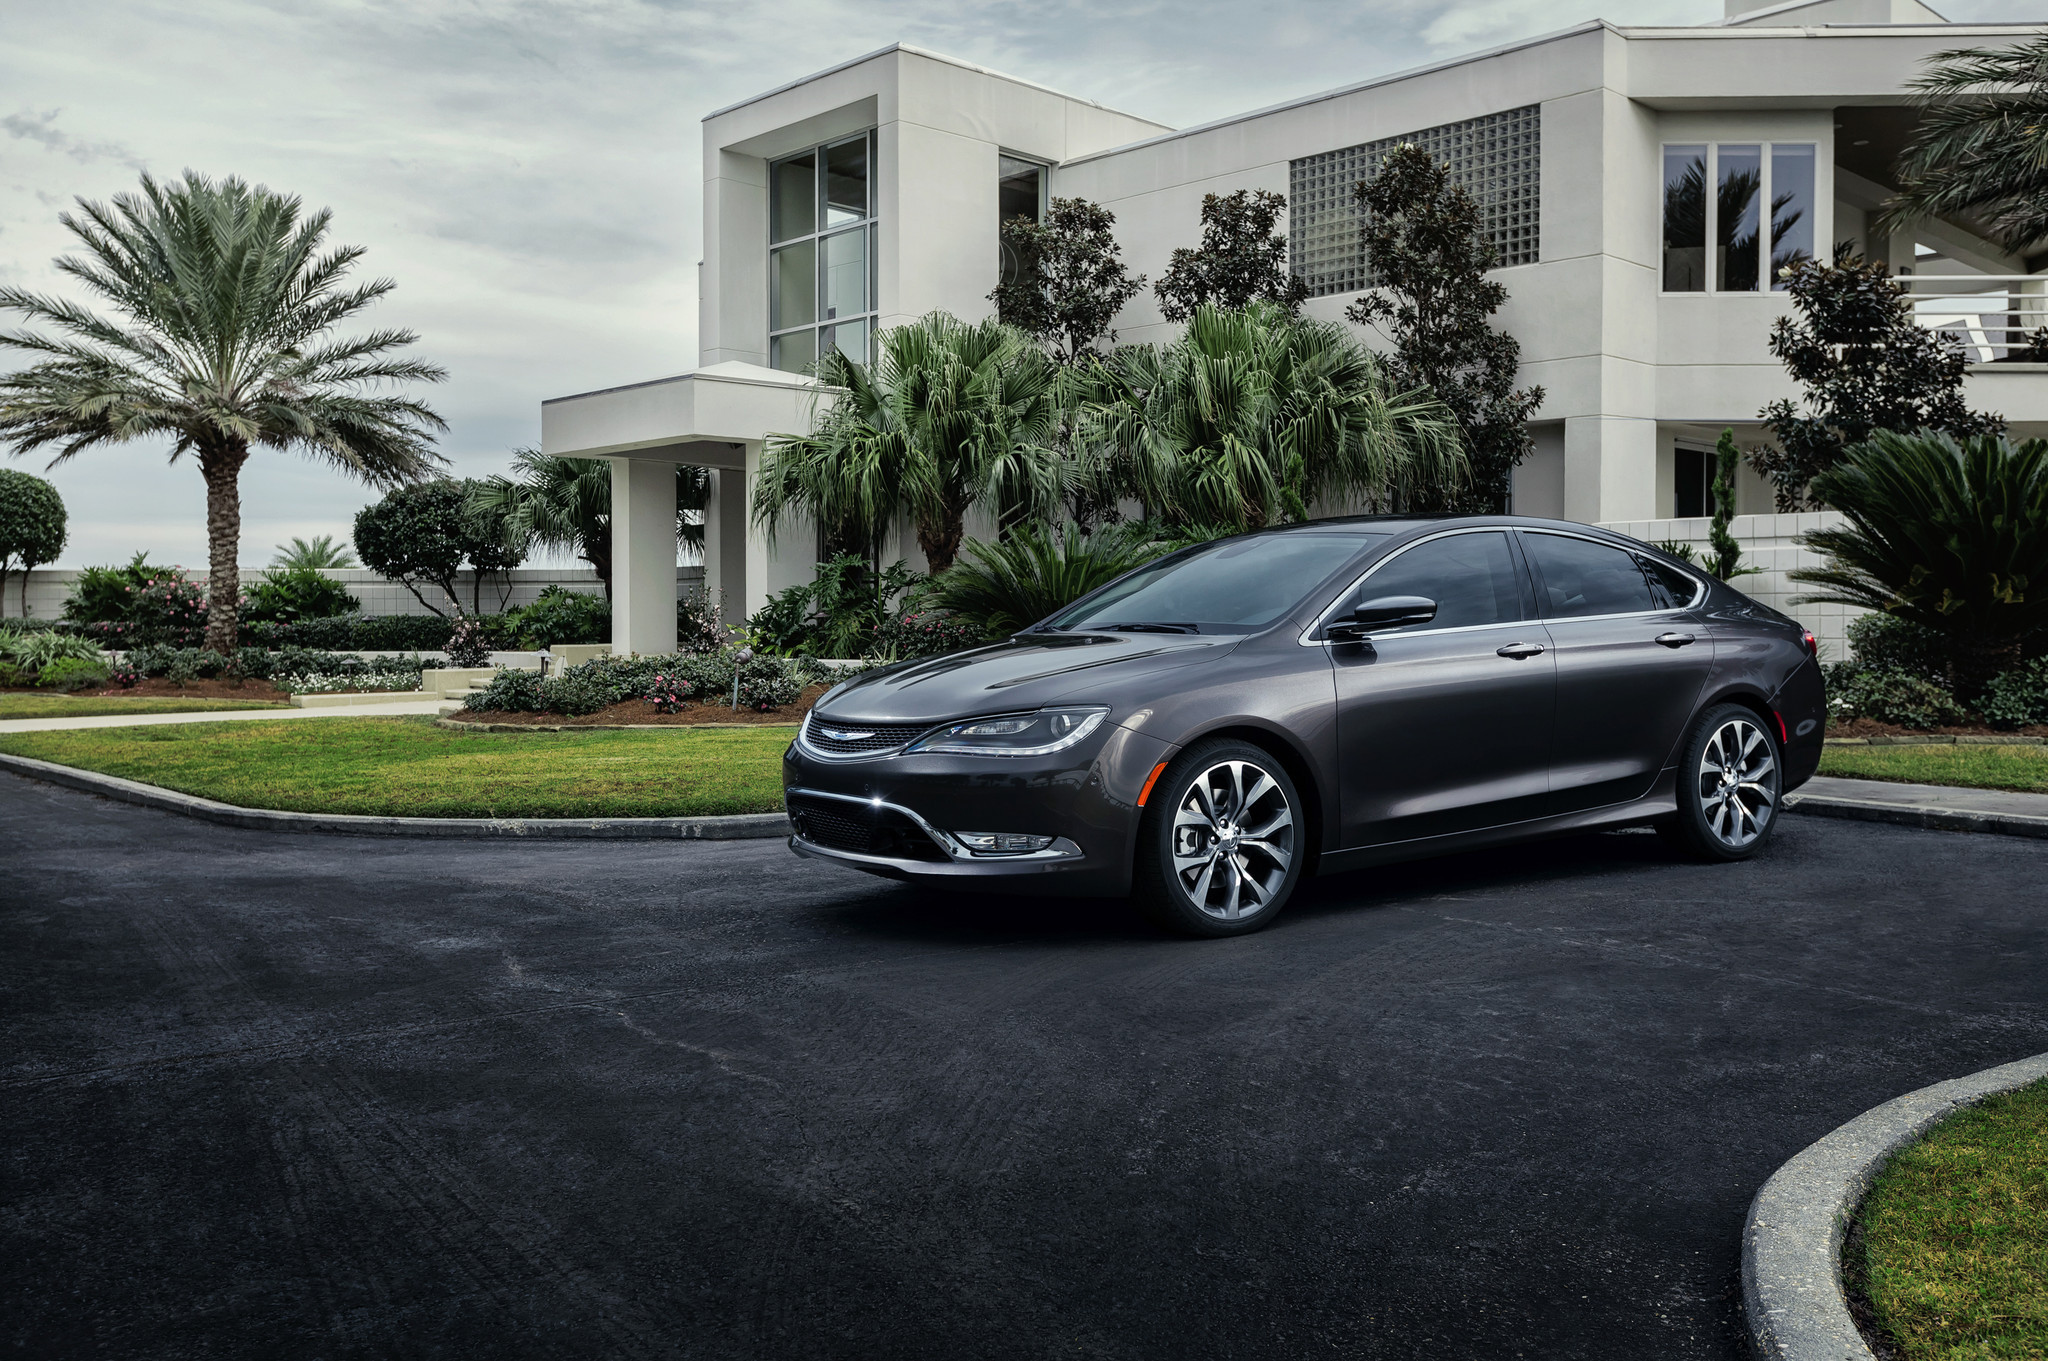 2015 Chrysler 200C (View 9 of 11)